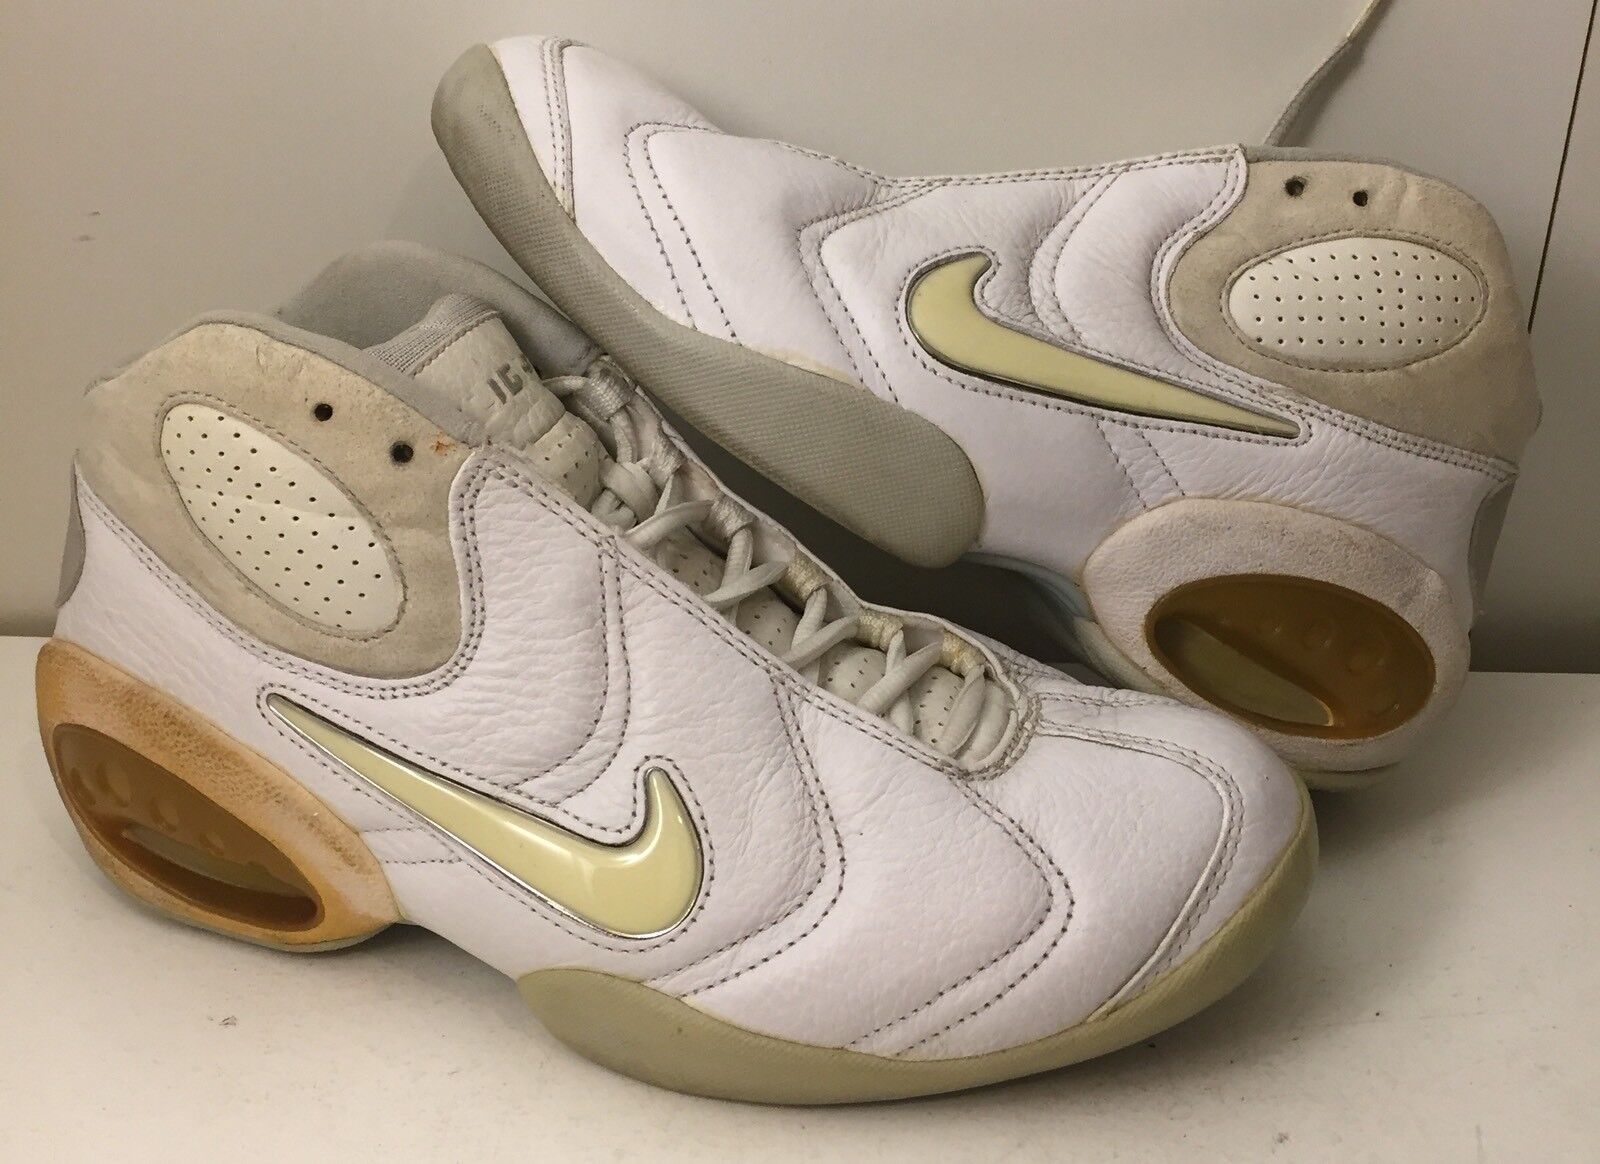 new product da605 6a6d1 Vintage 1999 Nike Air Flight Perception Basketball 1990s 830567 110 8  Schuhes SZ 8 110 a38acf